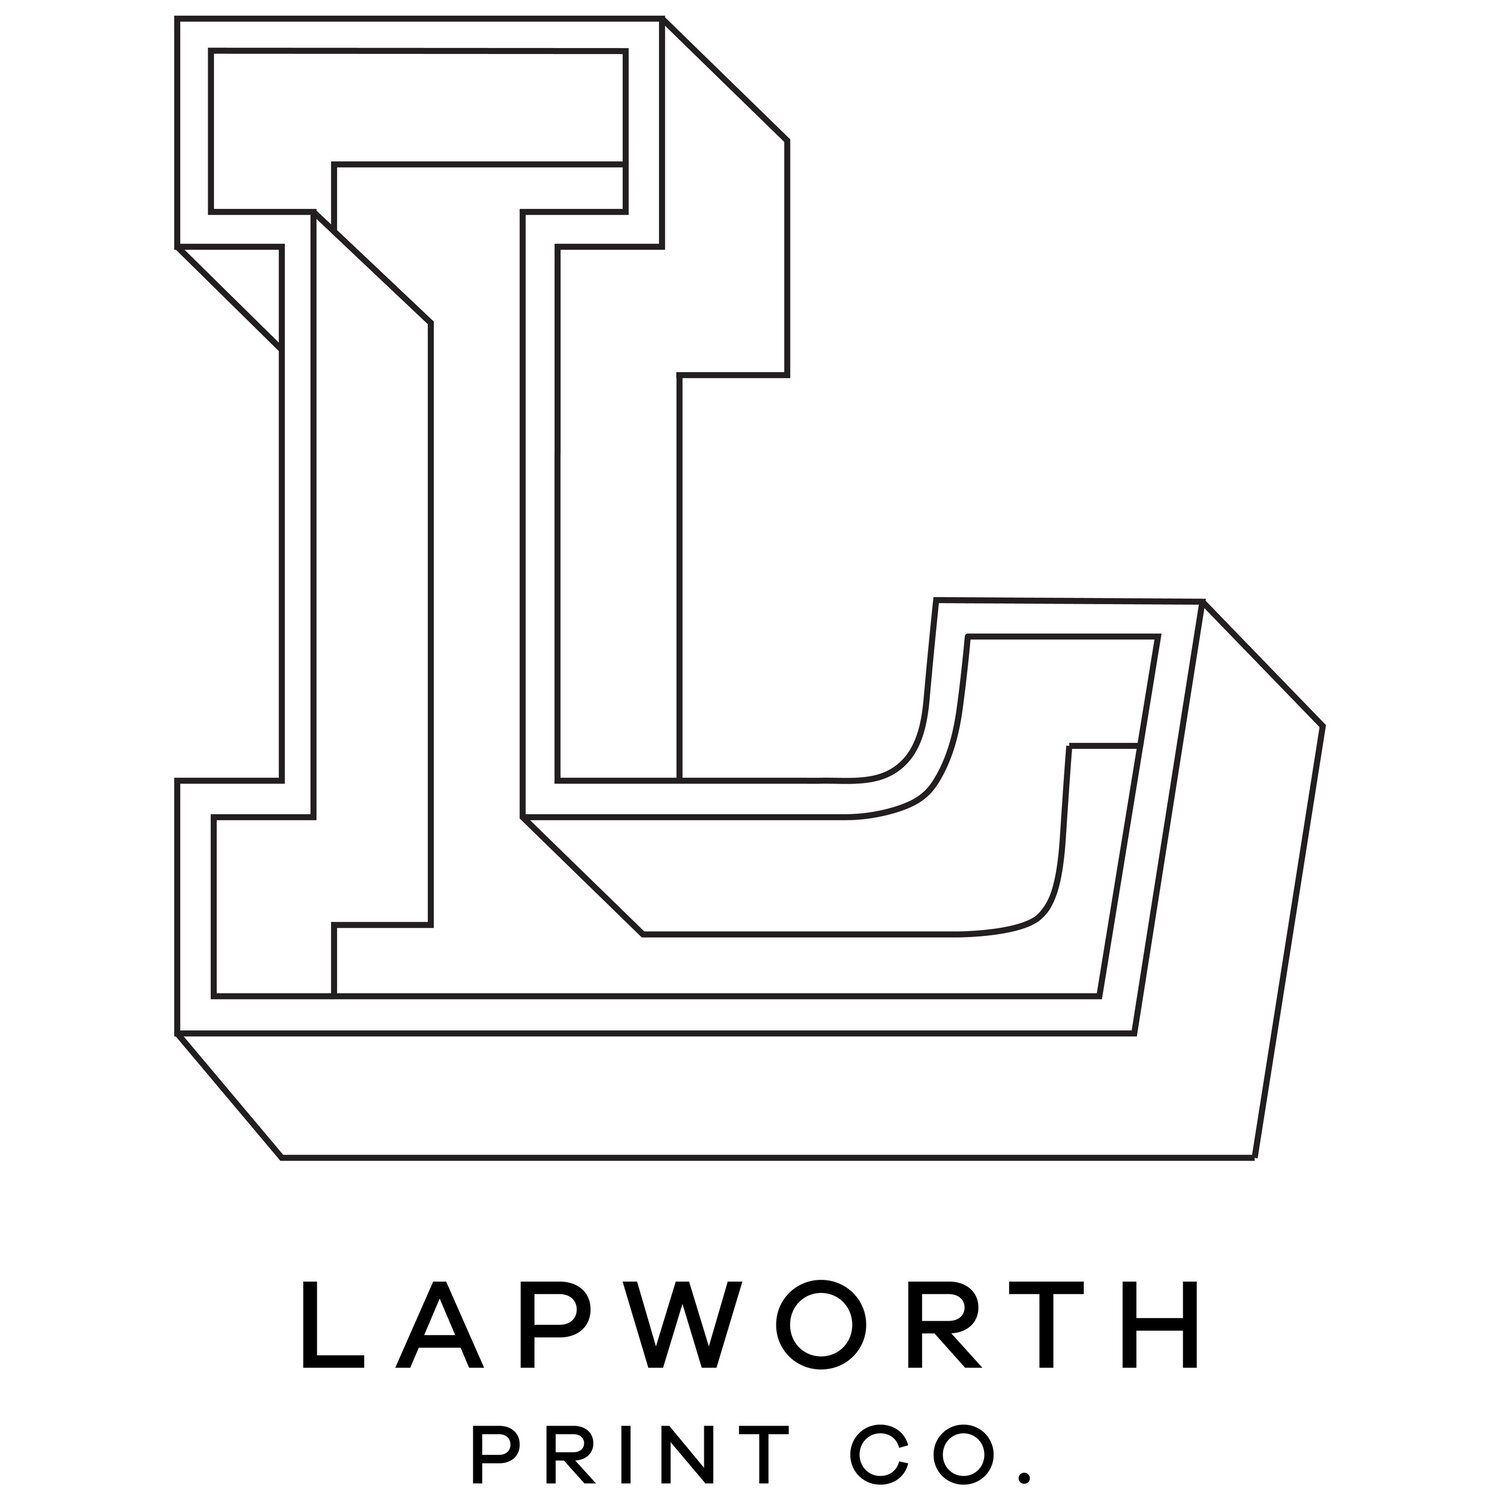 LAPWORTH PRINT CO.